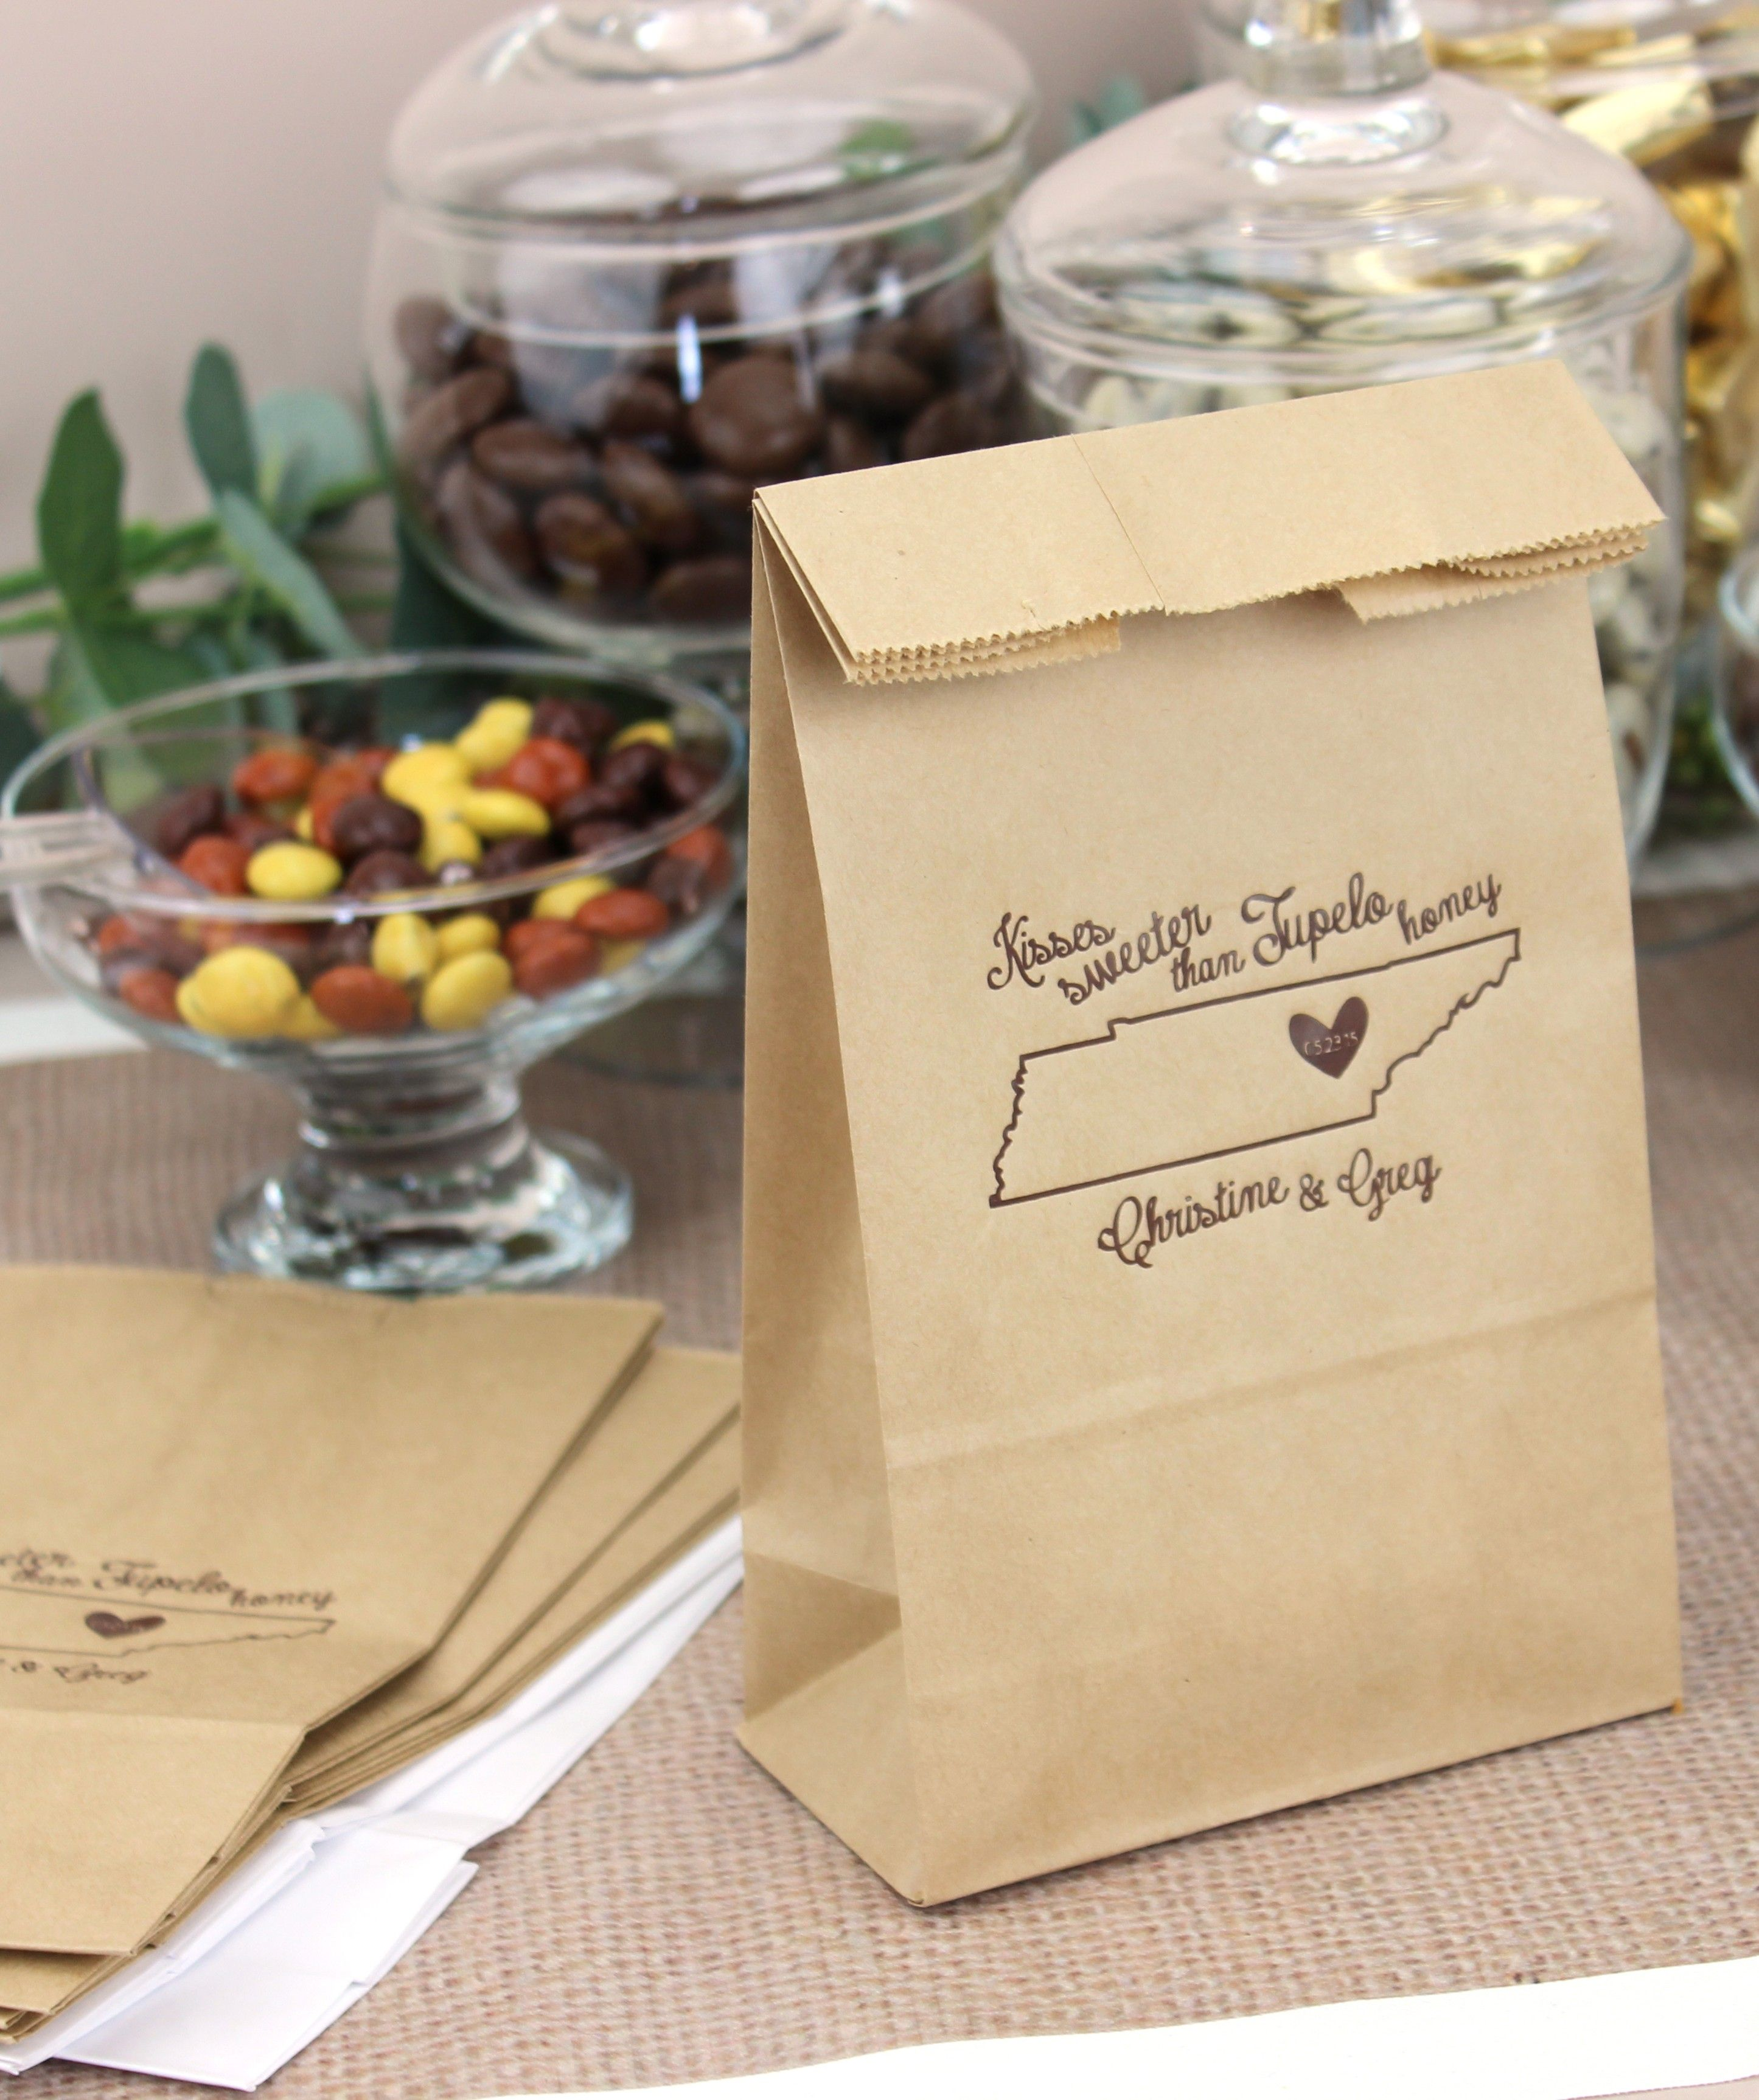 Personalized Party Bags Are The Perfect Size For Presenting Small Gifts Favors Goos And Wedding Giveaways To Your Reception Guests